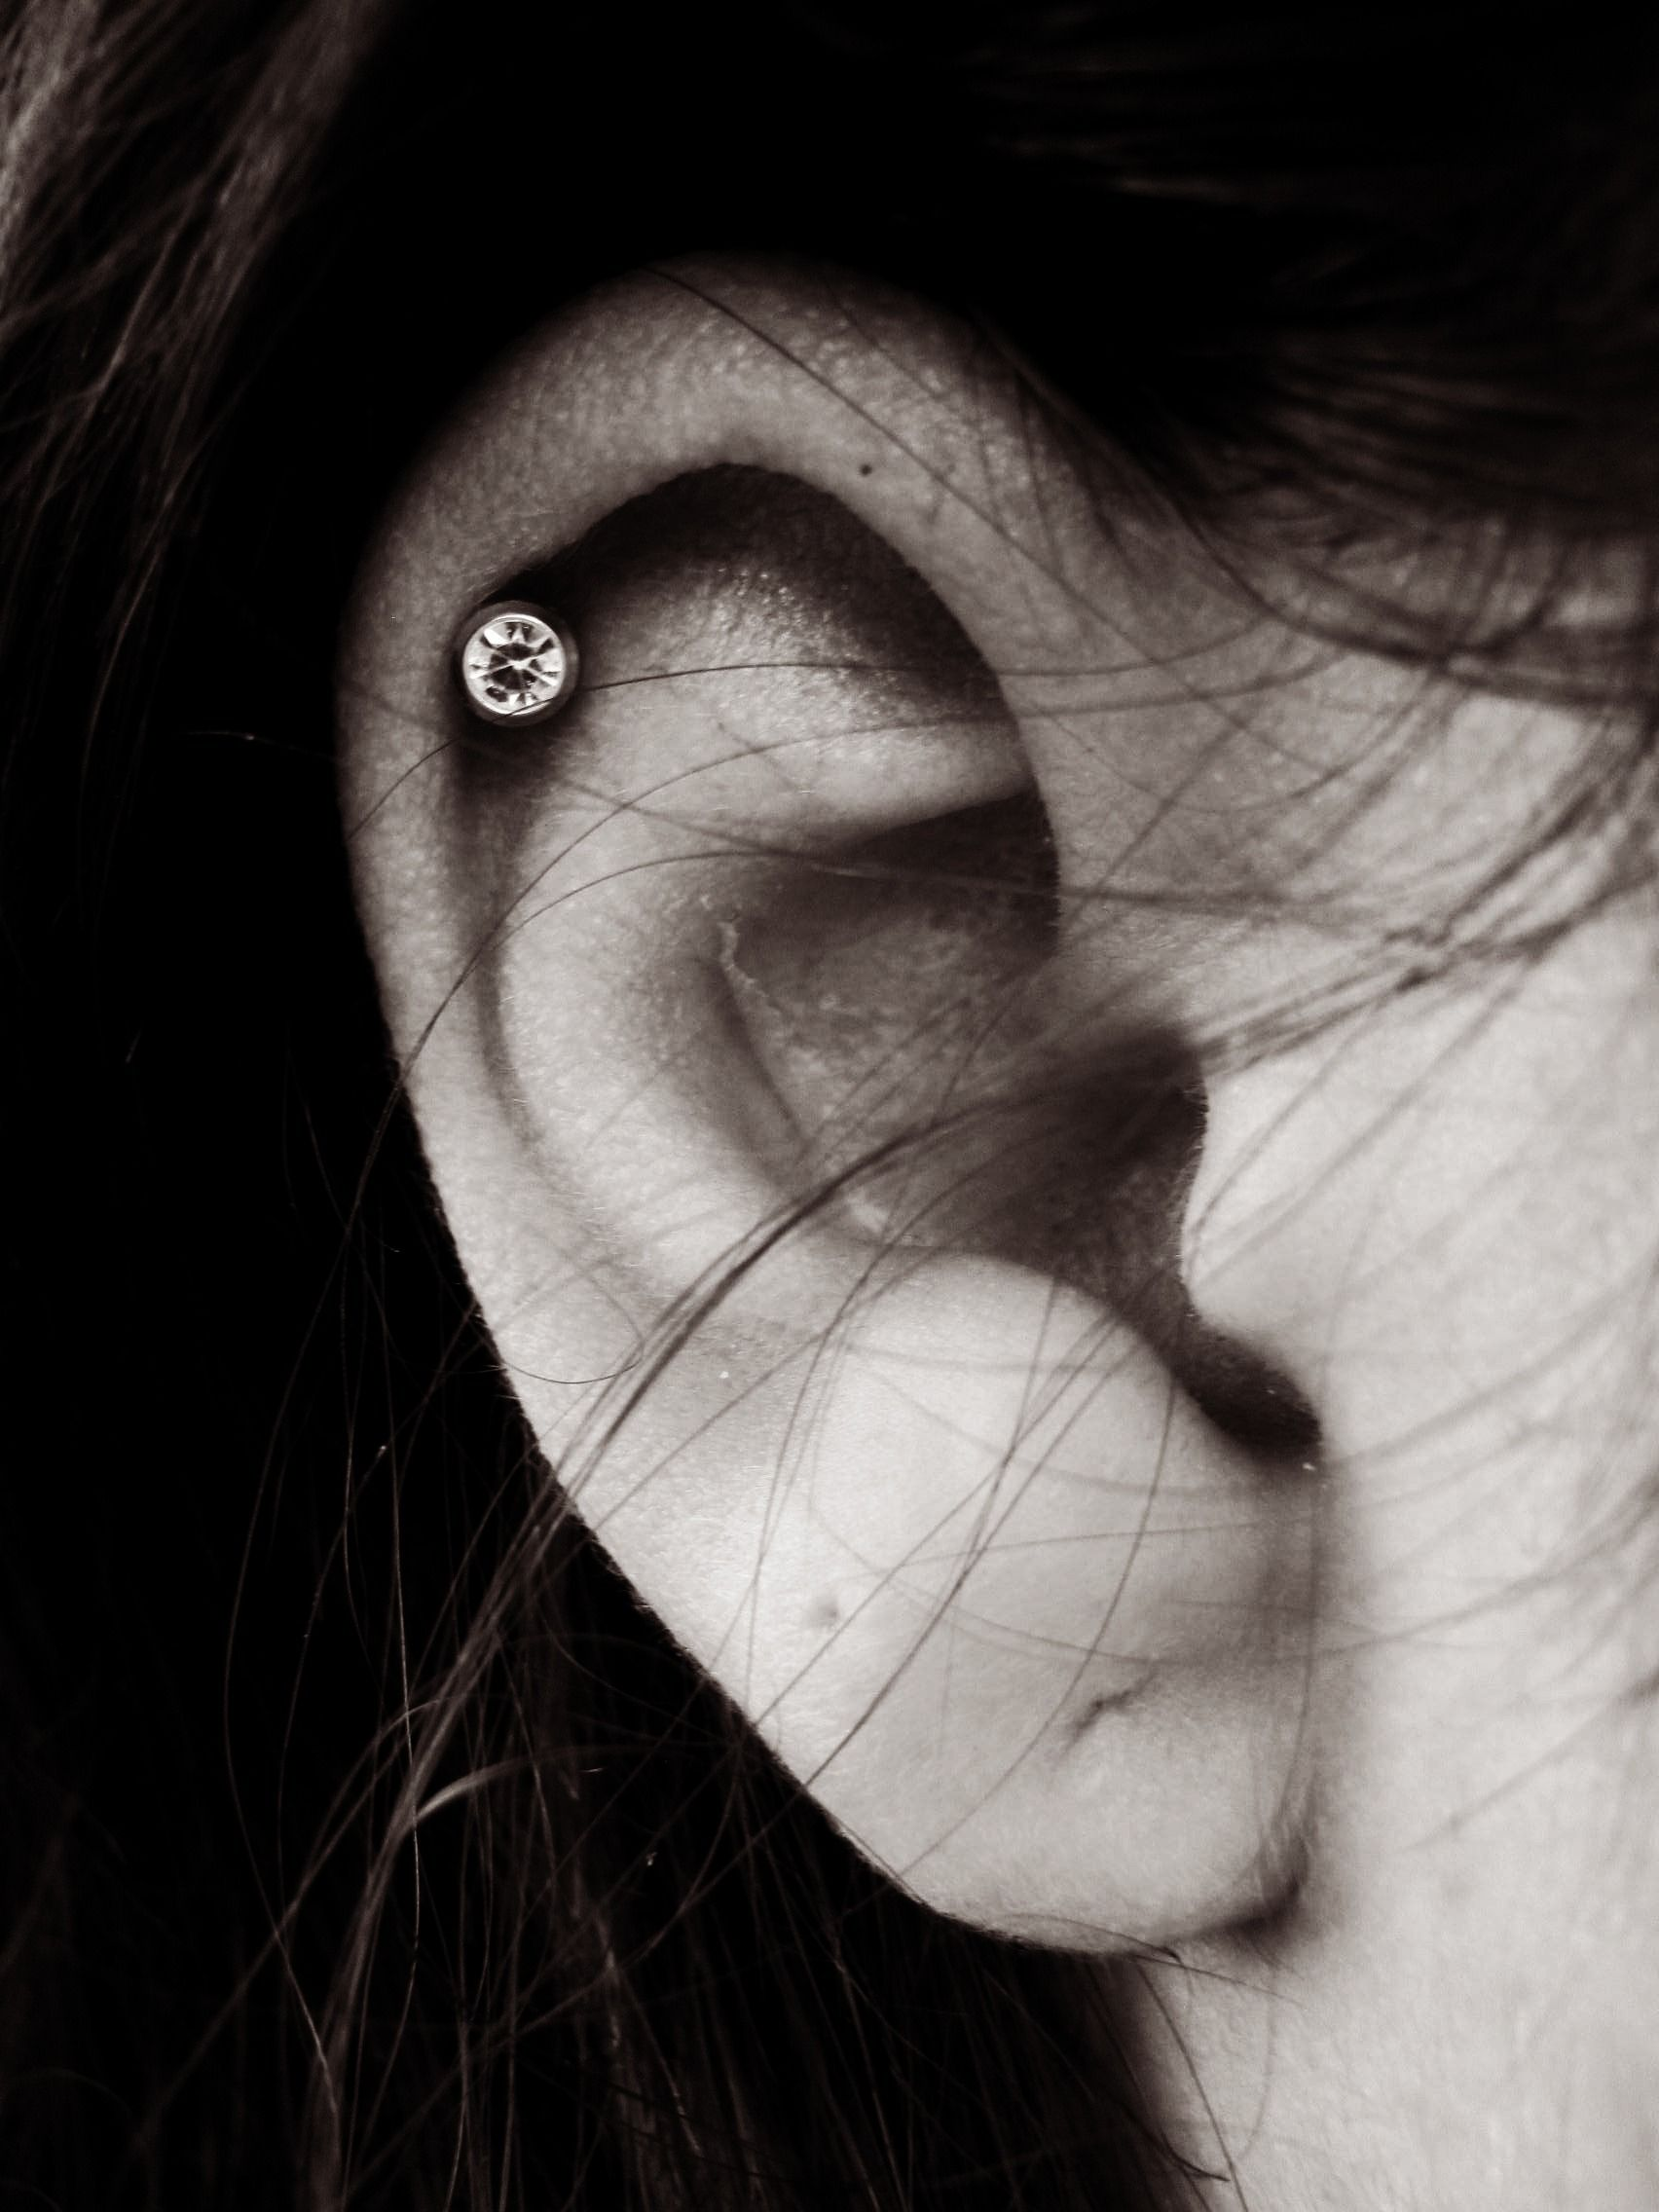 Bump under nose piercing  I want my cartilage pierced That will be my next piercing for sure